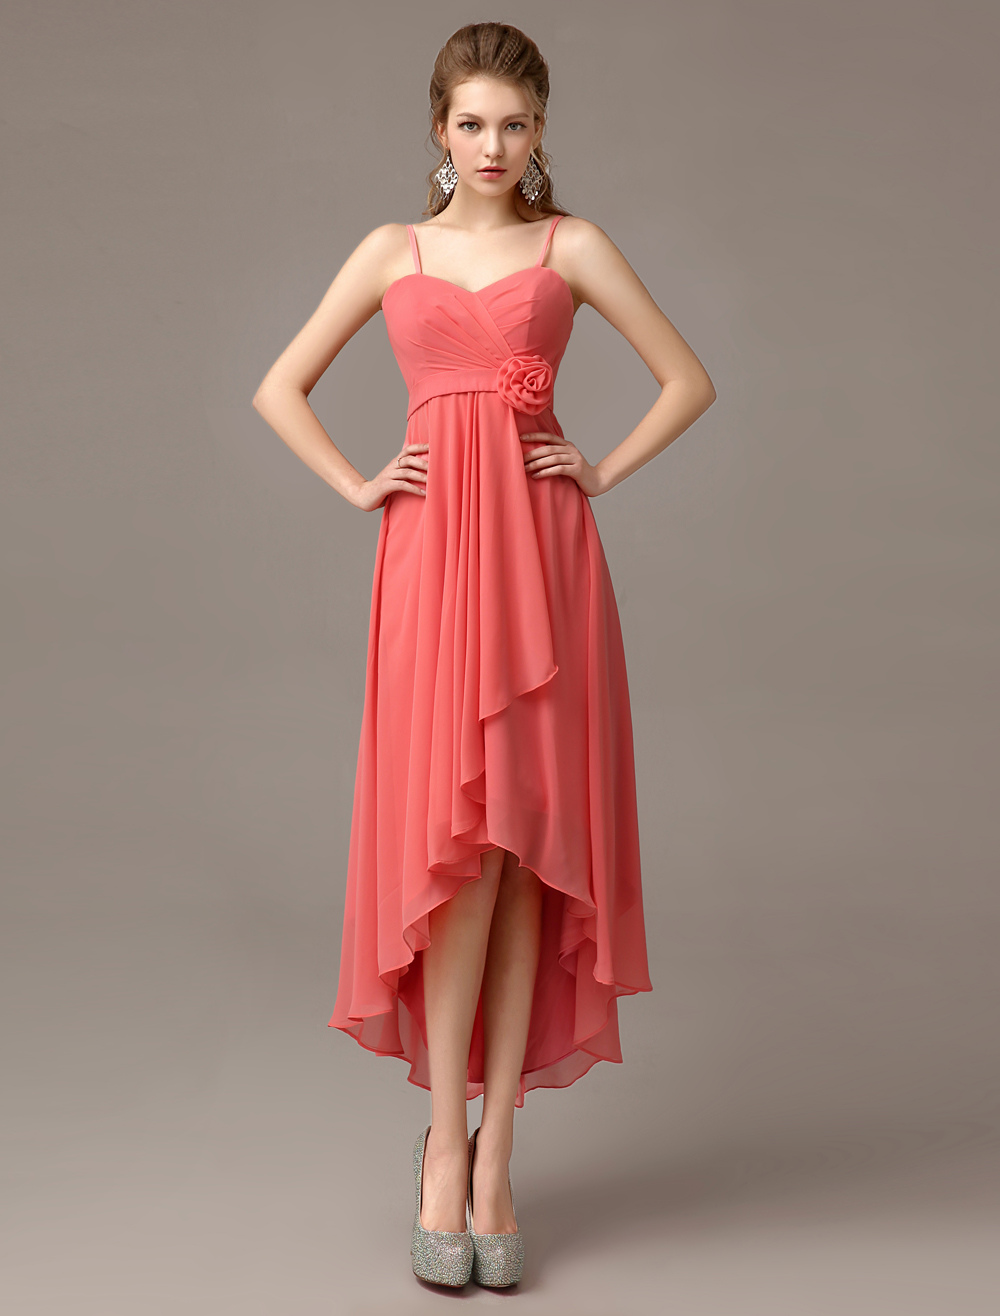 Asymmetrical Sheath Watermelon Flower Chiffon Bridesmaid Dress with Straps Neck